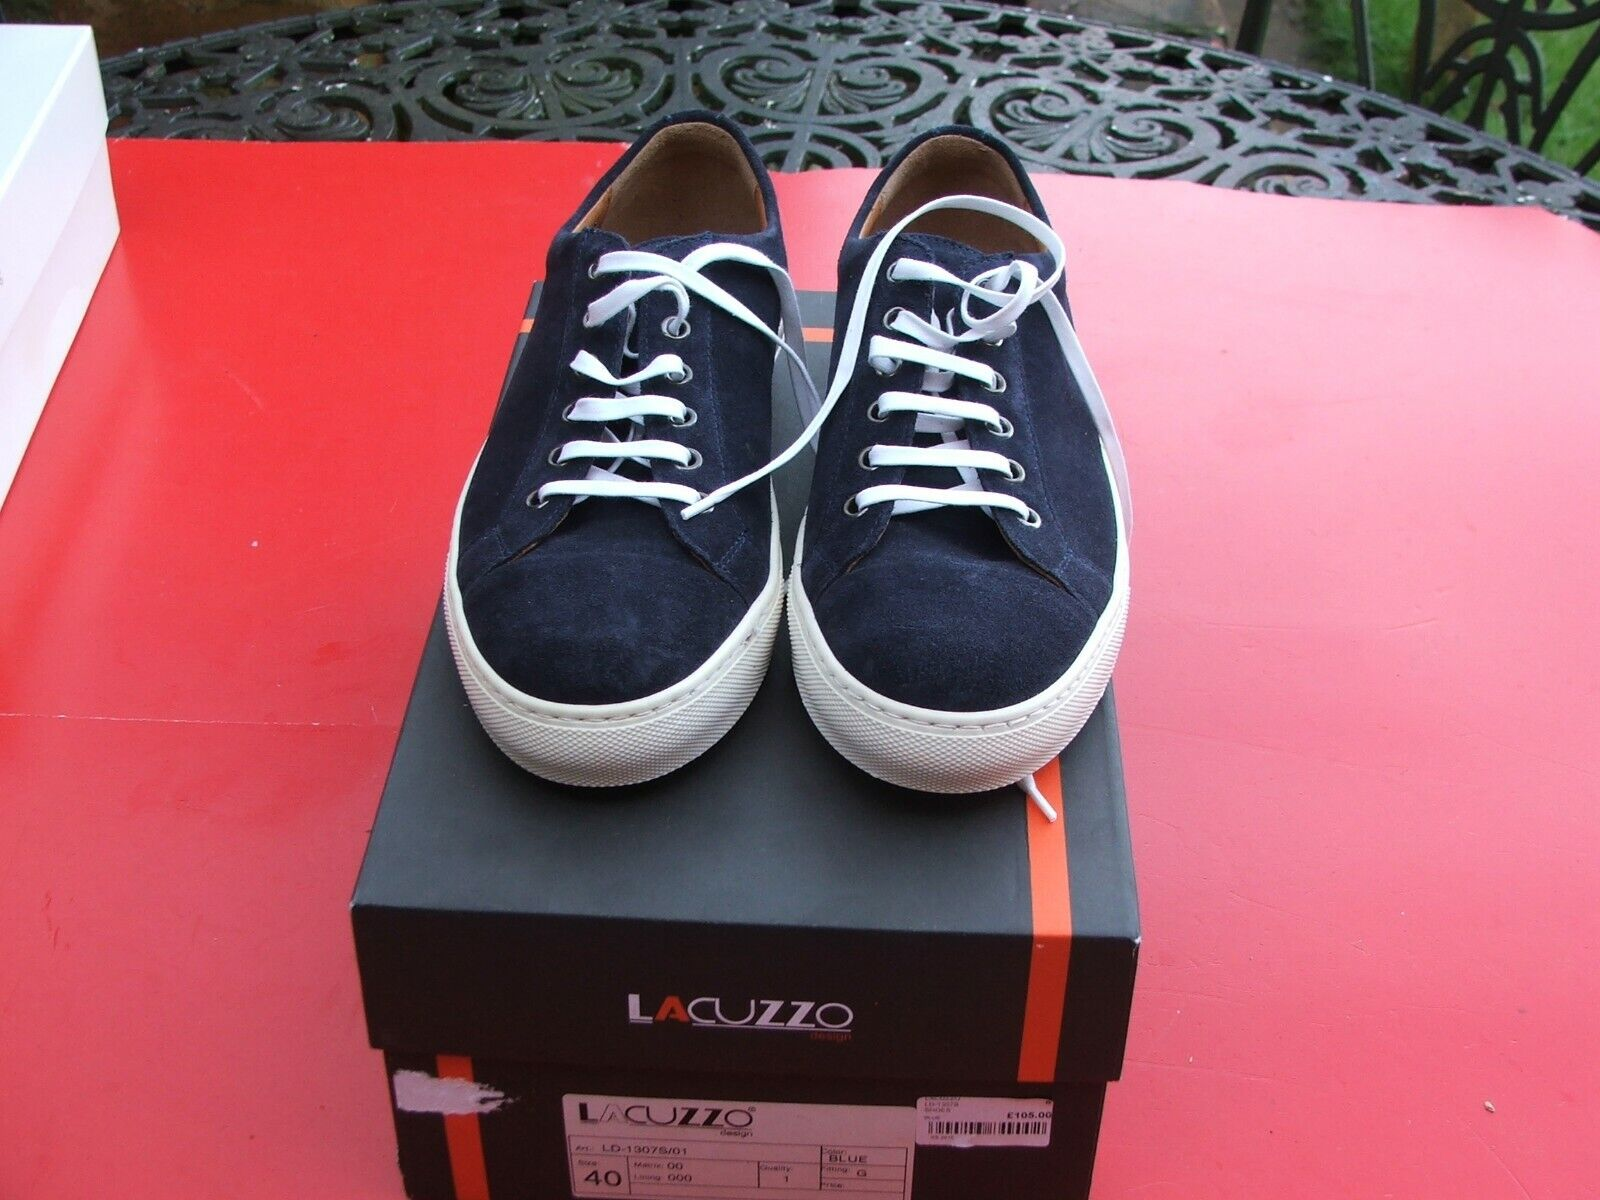 Mens Boys Lacuzzo Trainers size UK 6.5 Eu 40 navy suede upper G fitting